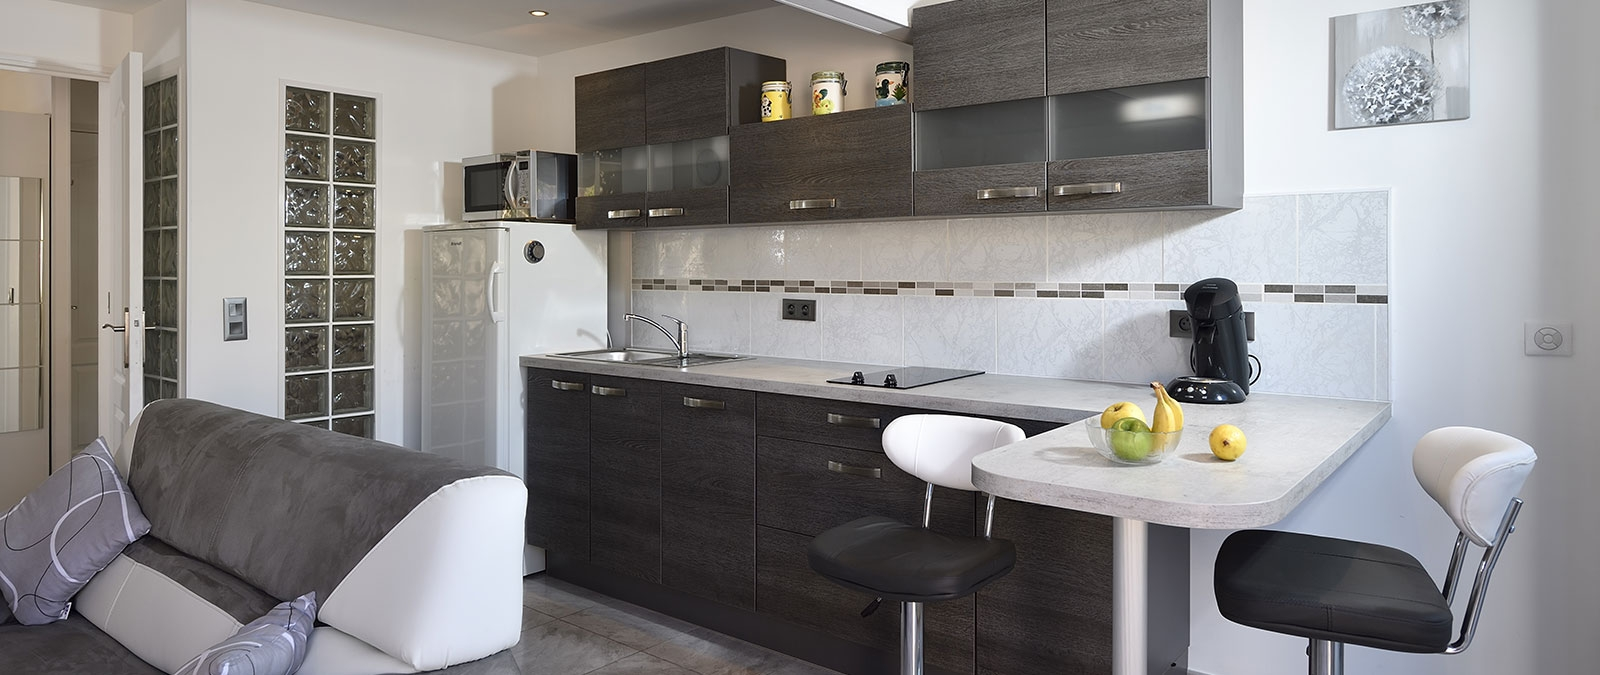 Equipped kitchen in the libertine Fifty Shades villa